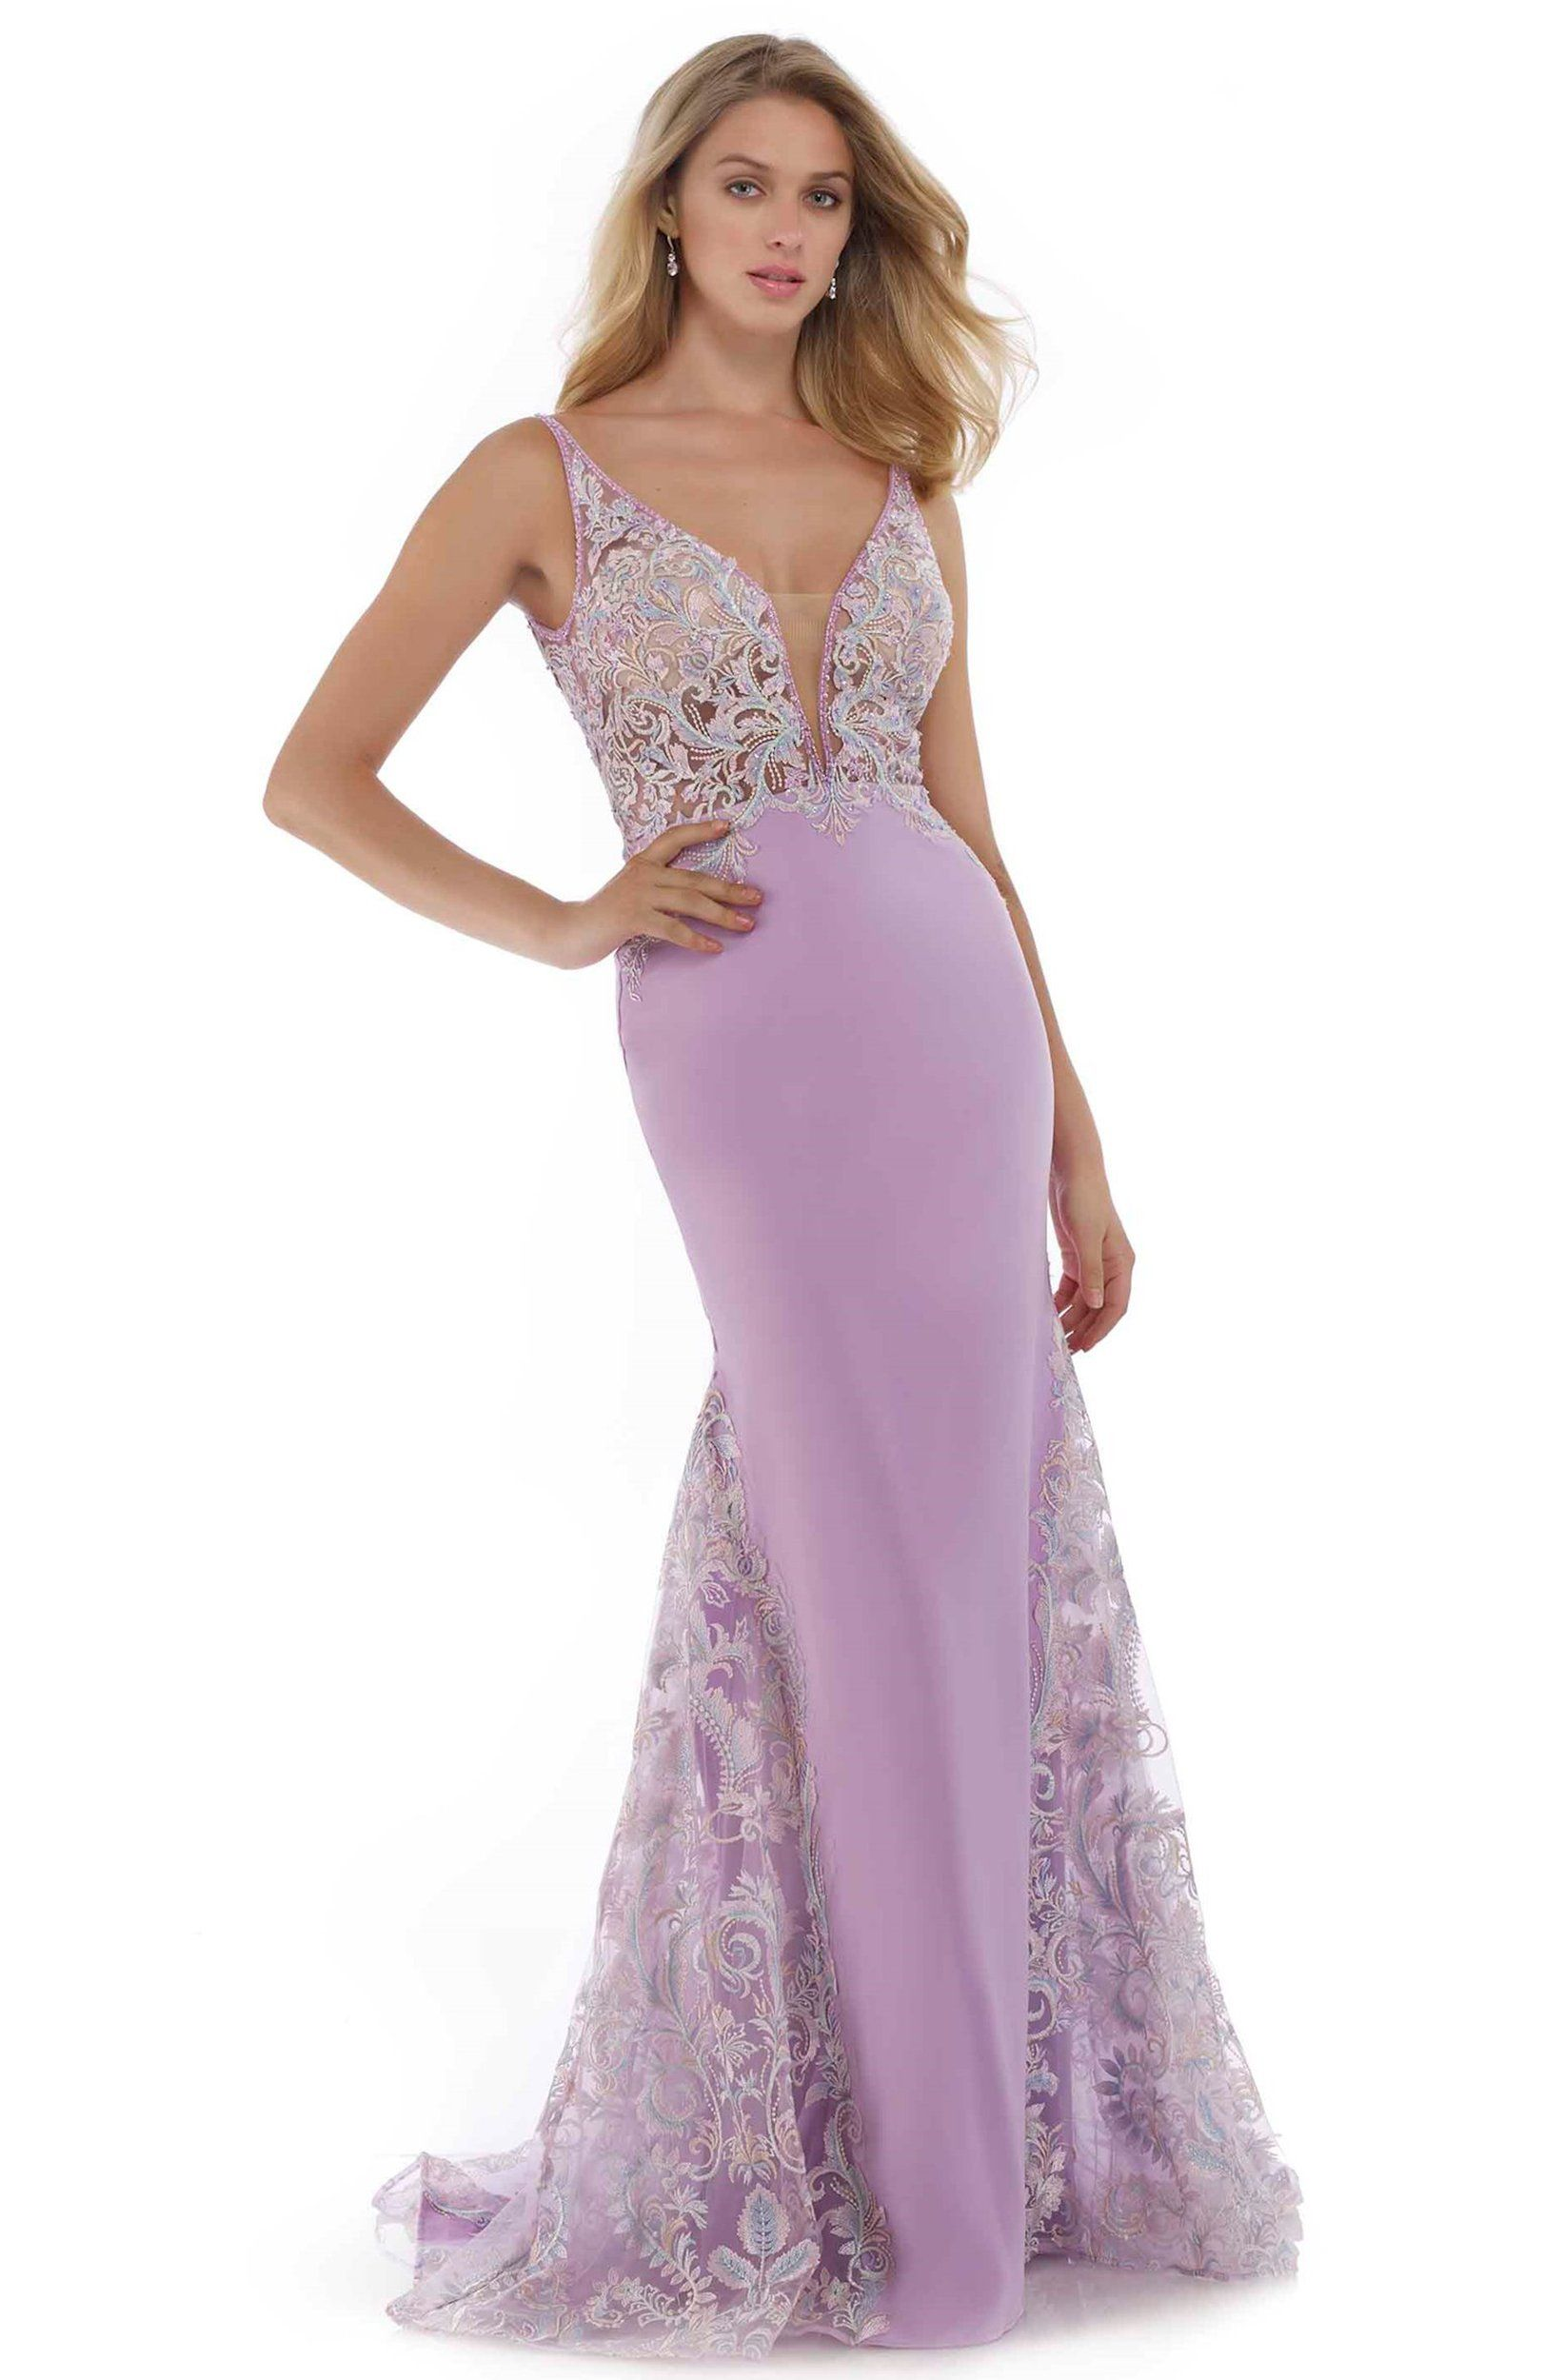 Morrell Maxie 16098 Embroidered Deep V neck Mermaid Dress